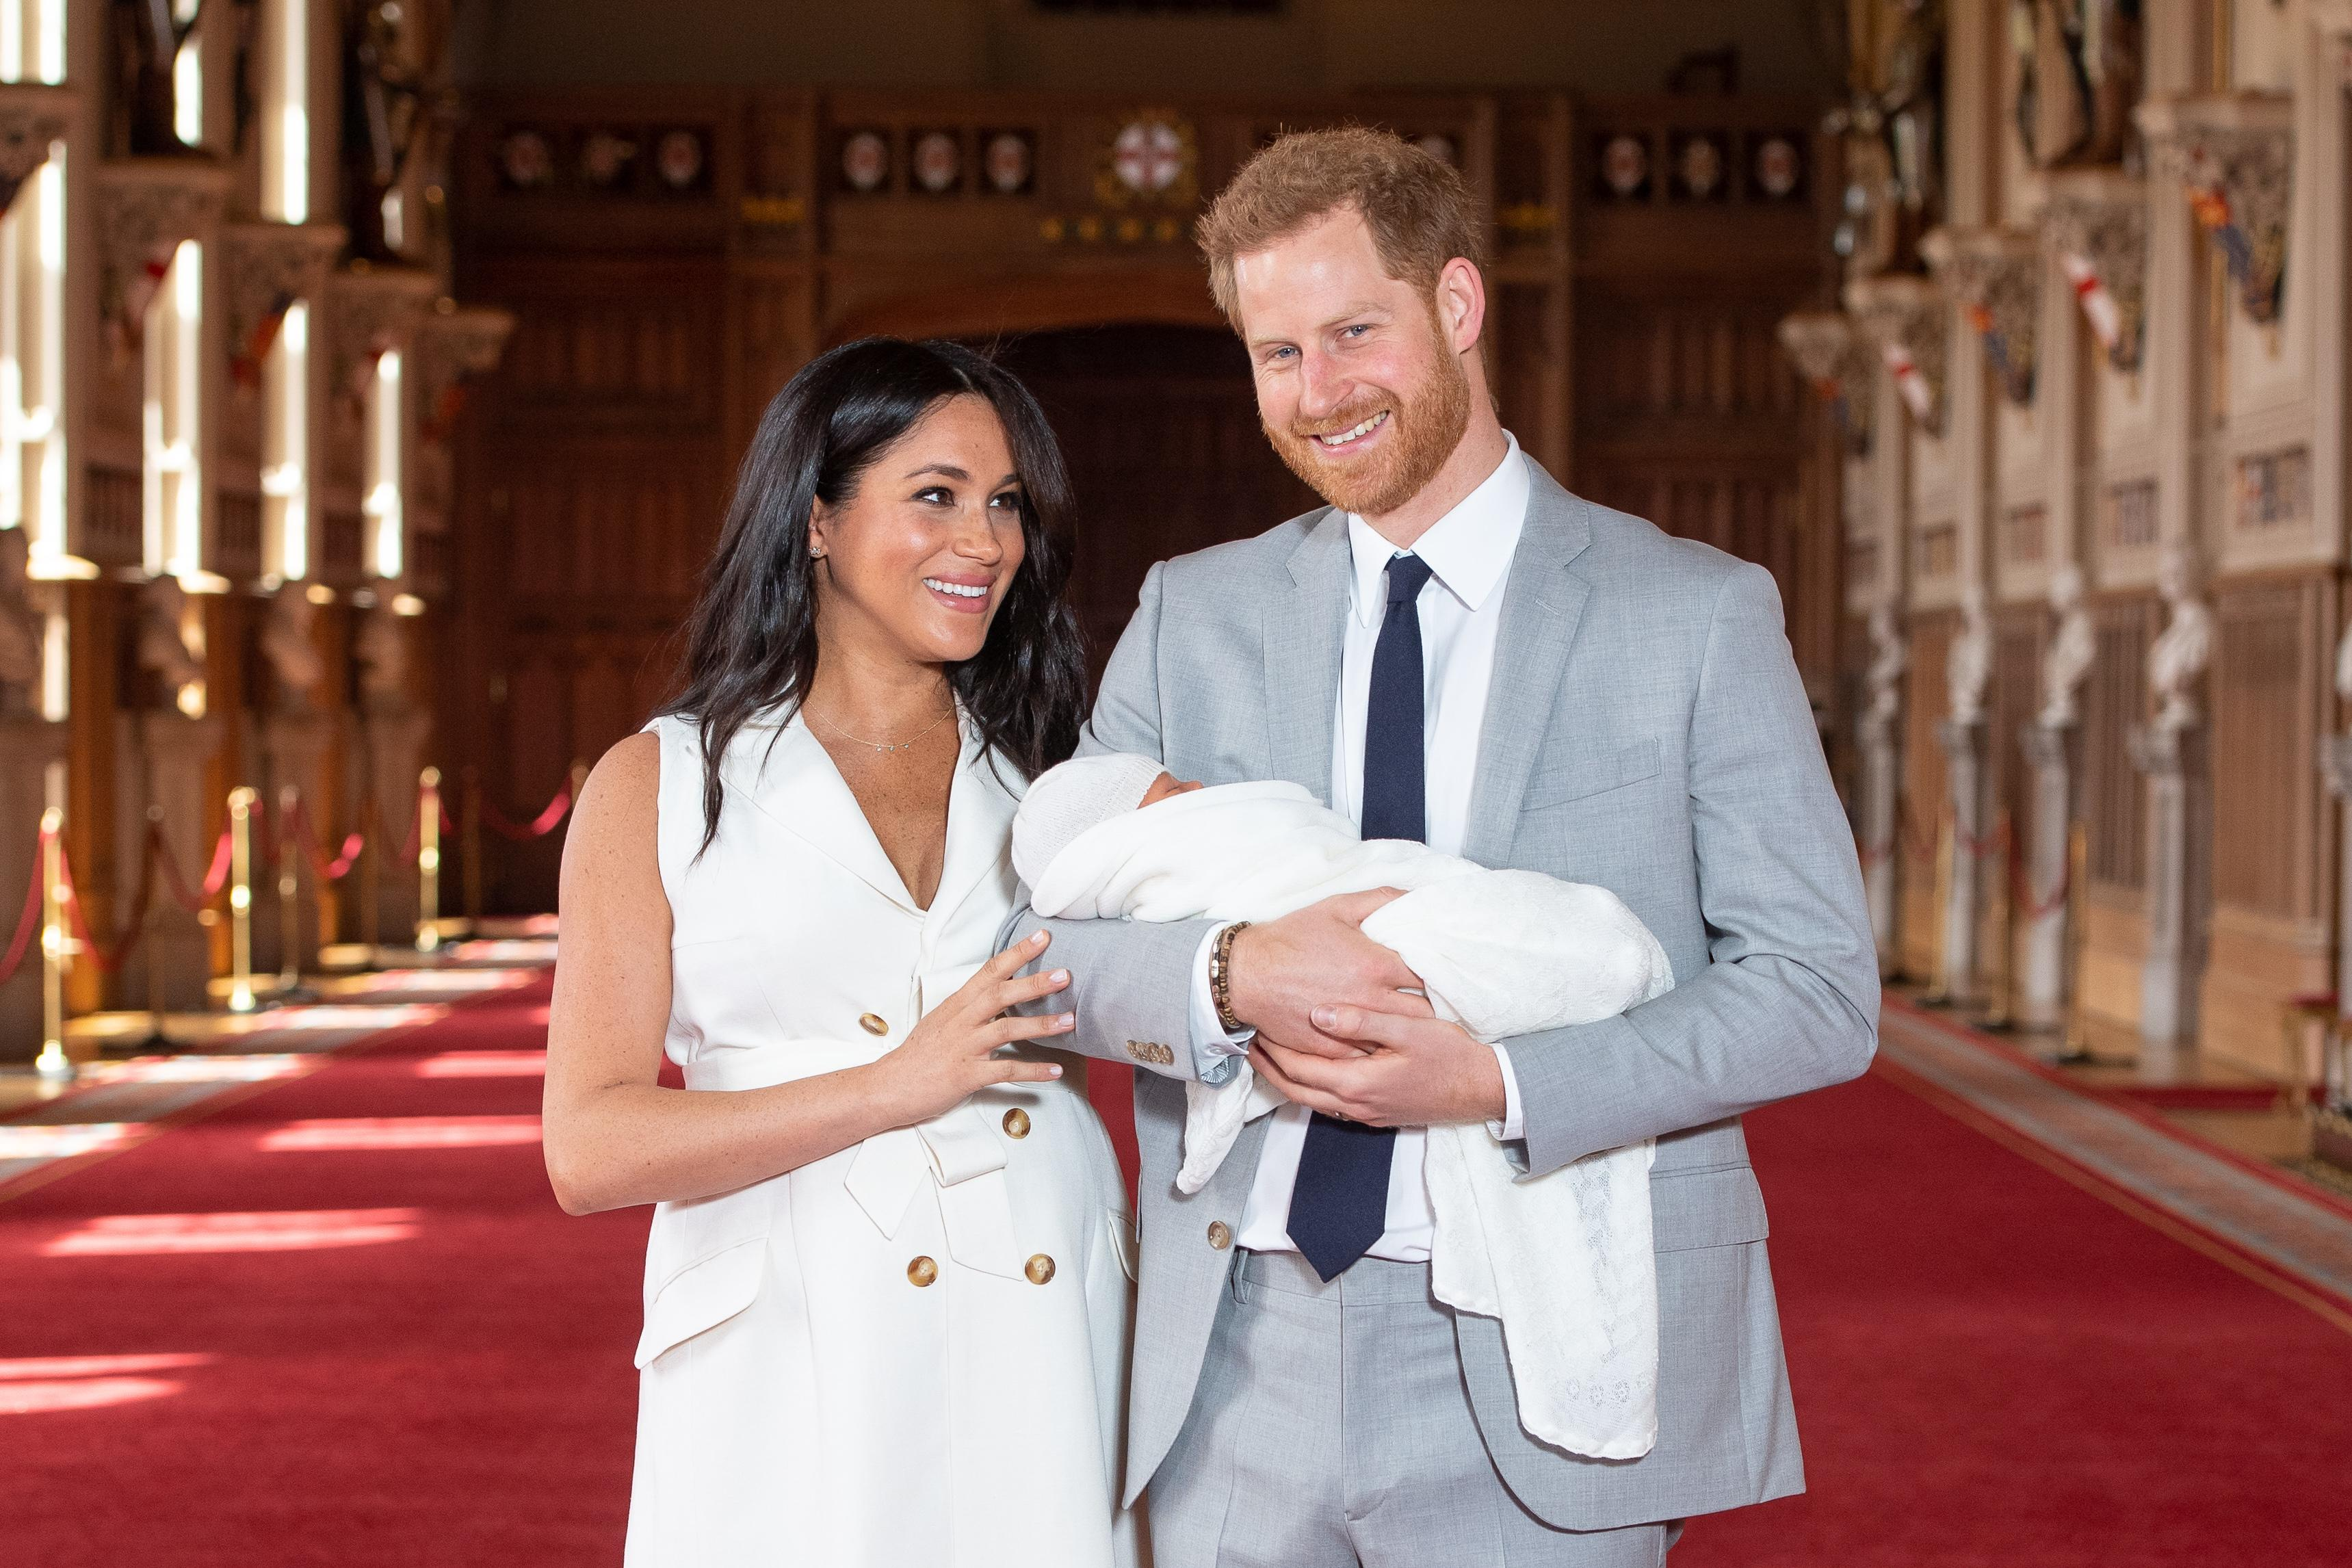 Embargoed to 0001 Tuesday June 25 File photo dated 08/05/19 of the Duke and Duchess of Sussex with their baby son Archie Harrison Mountbatten-Windsor, during a photocall in St George's Hall at Windsor Castle in Berkshire. The funding for the Duke and Duchess of Sussex's activities in the year Meghan officially joined the royal family contributed to a ??5 million bill to the Prince of Wales.